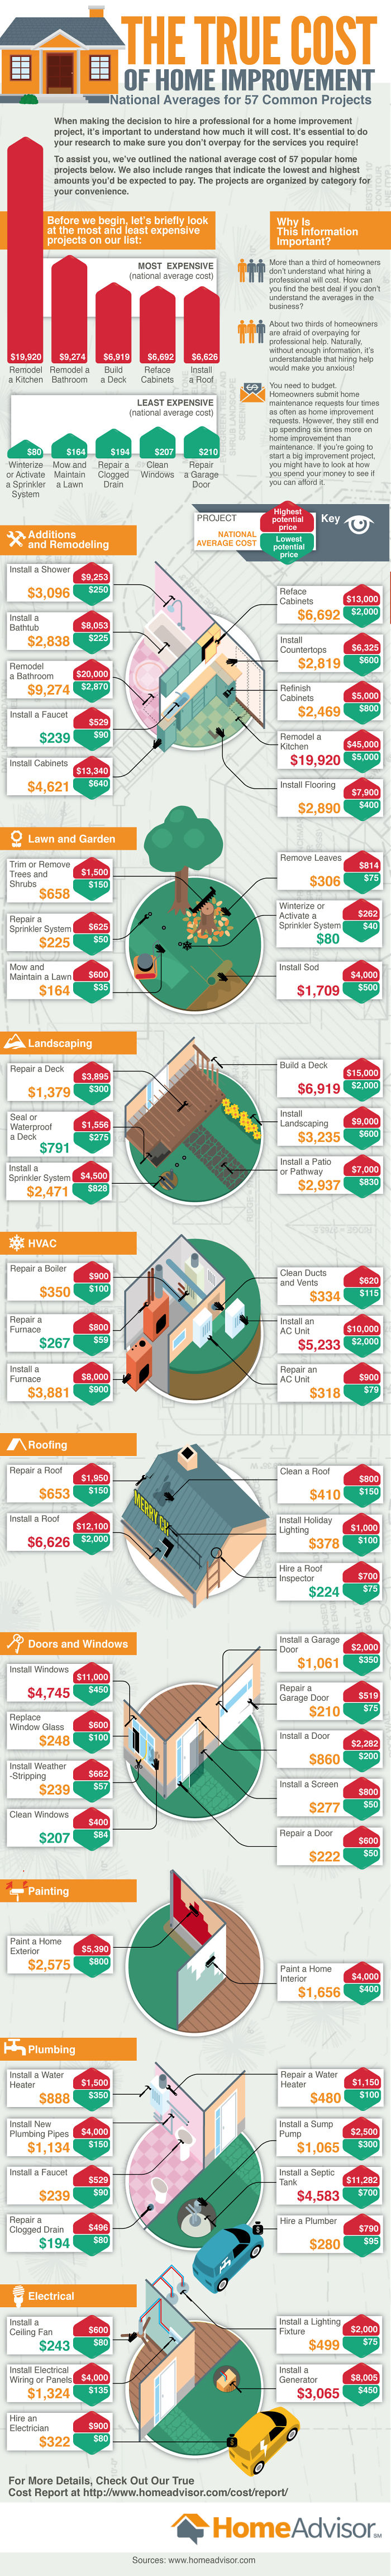 Just How Much Will That Next Home Improvement Project Cost?